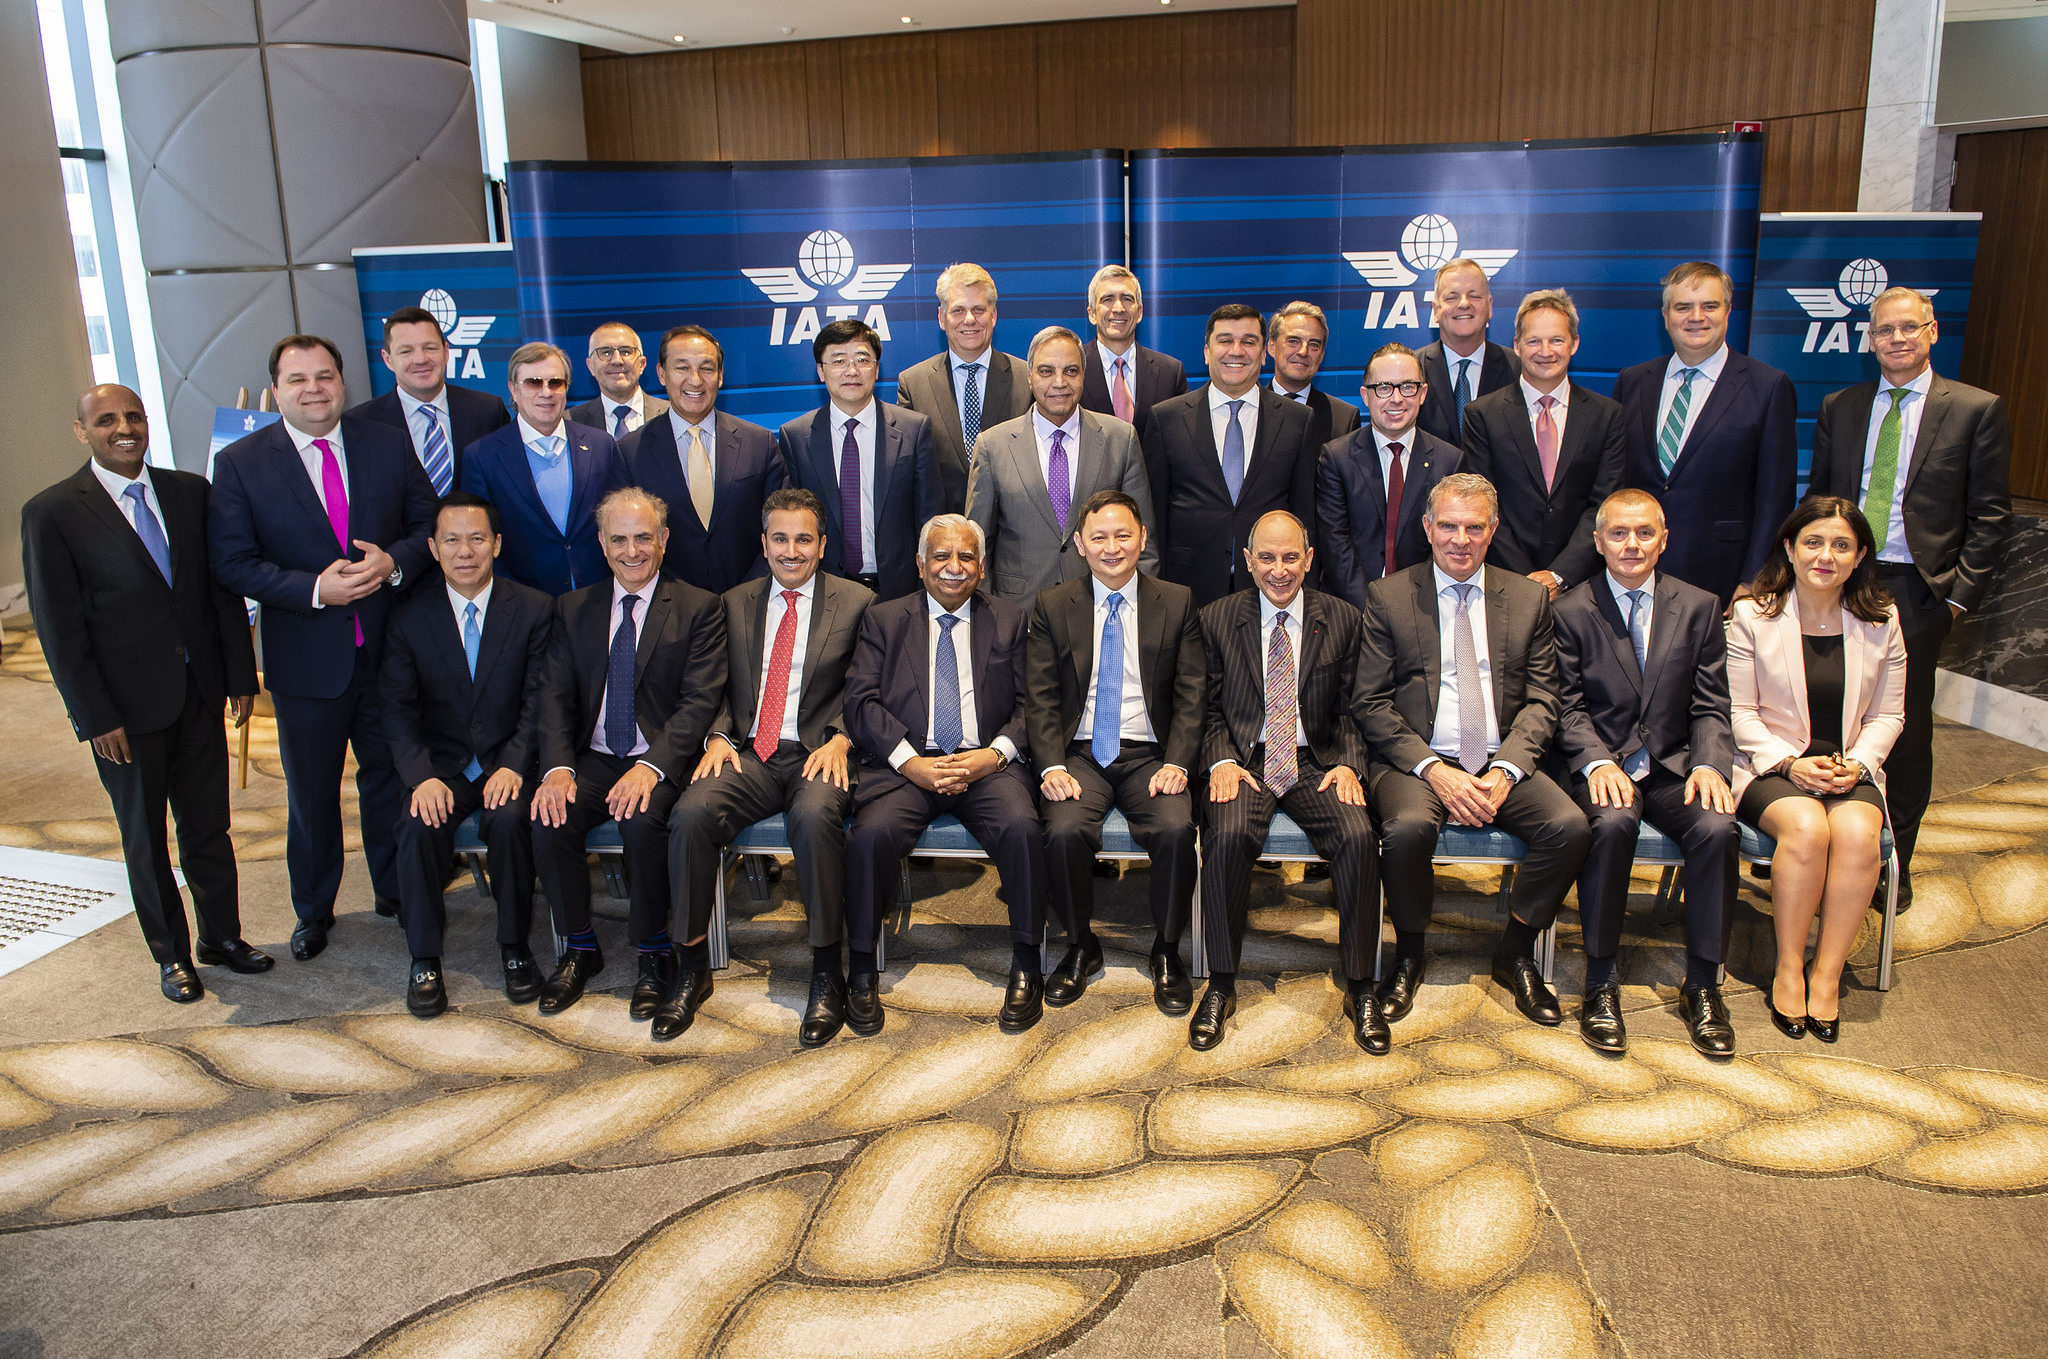 Aviation Leaders at the 2018 IATA Annual General Meeting Want to Ease Logistical Tension with International Travel